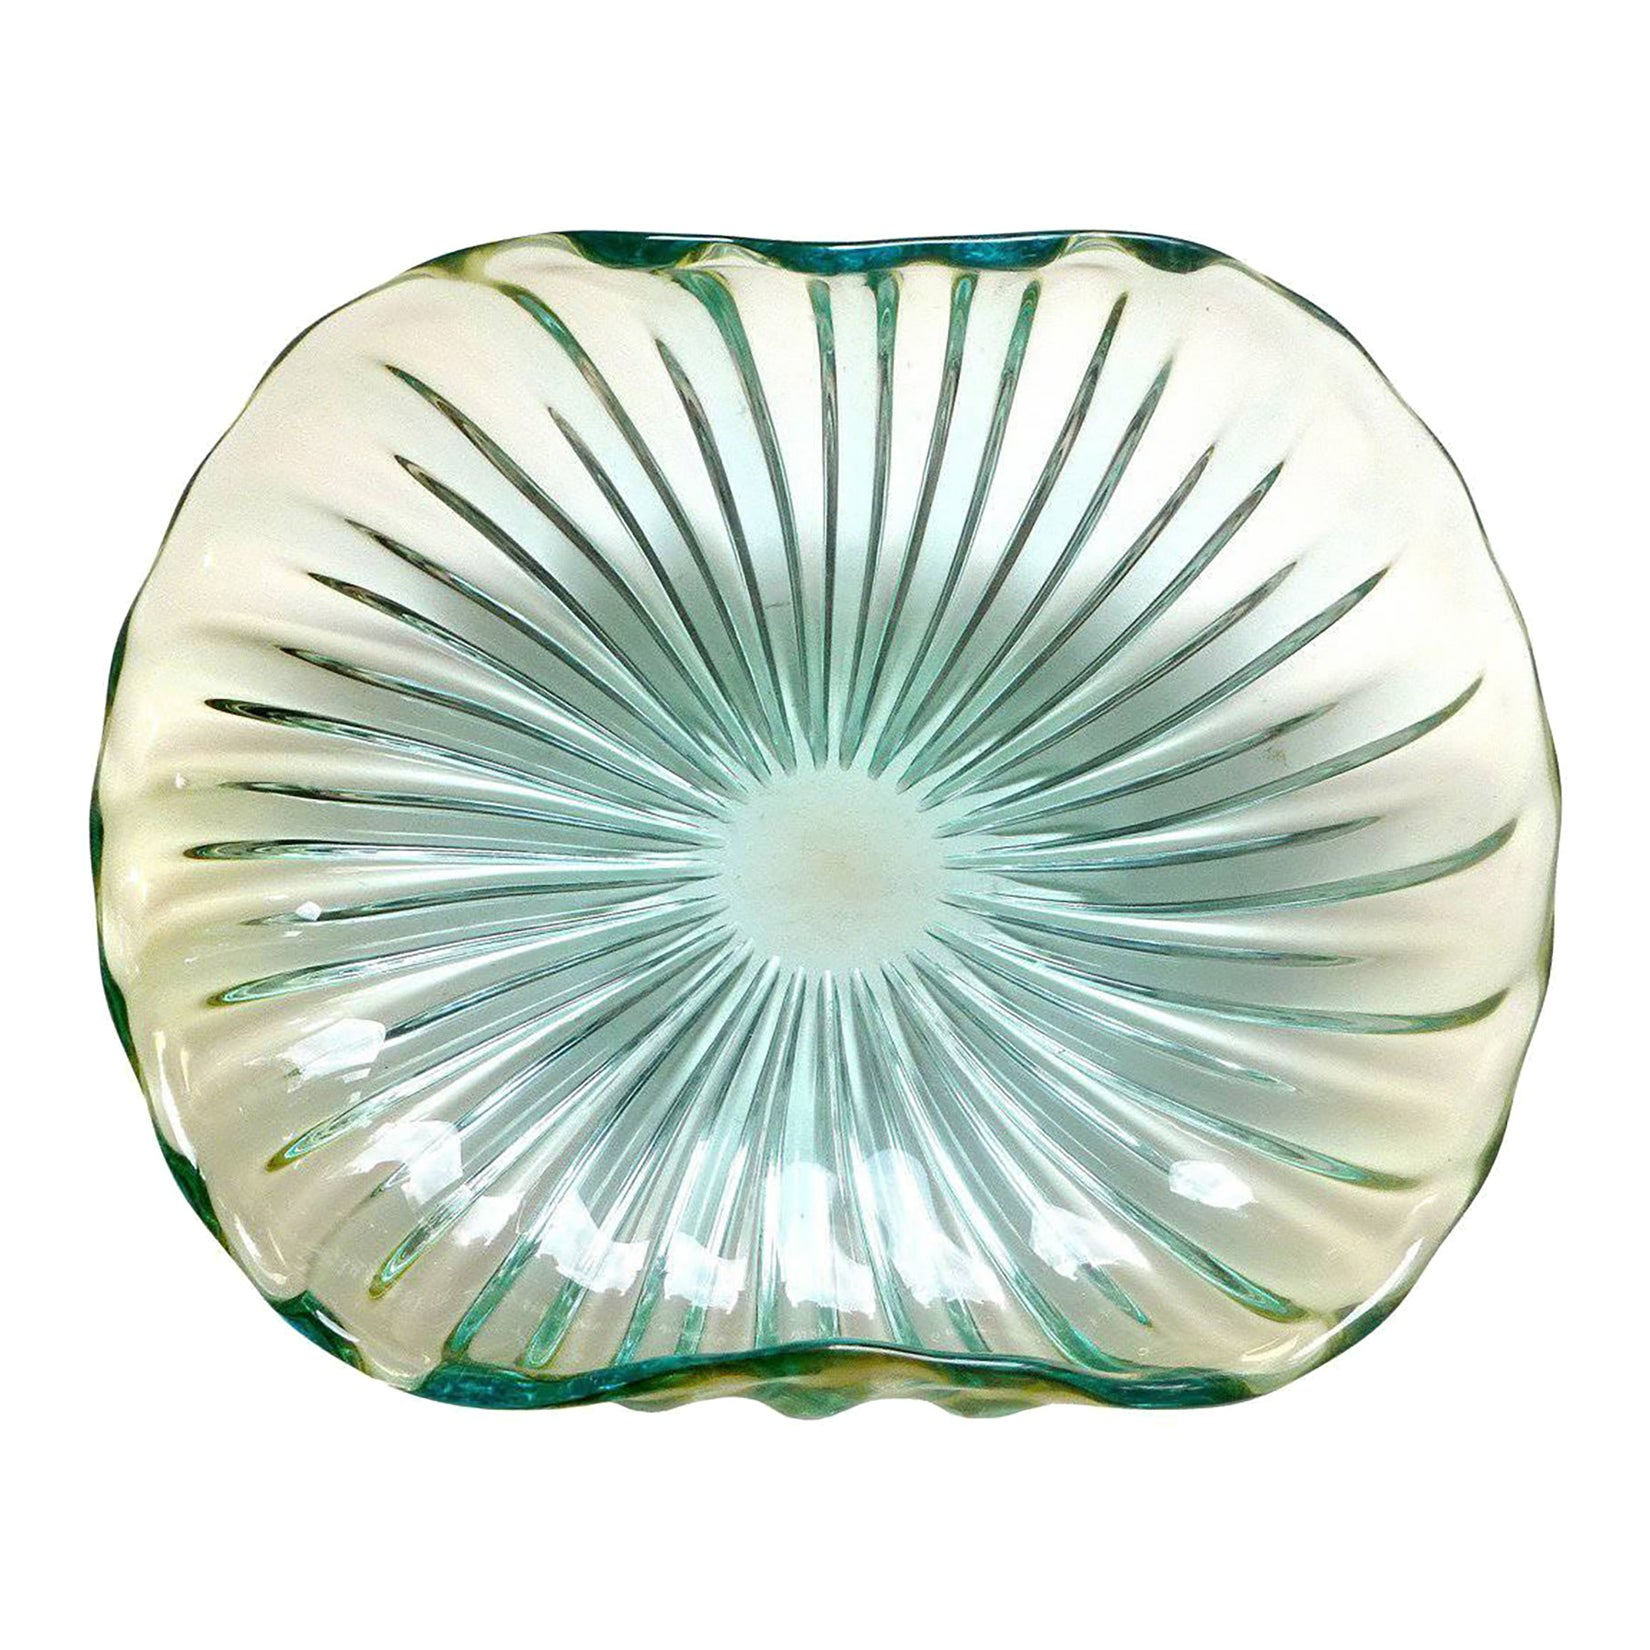 Alfredo Barbini Murano Sommerso Ribbed Body Italian Art Glass Centerpiece Bowl